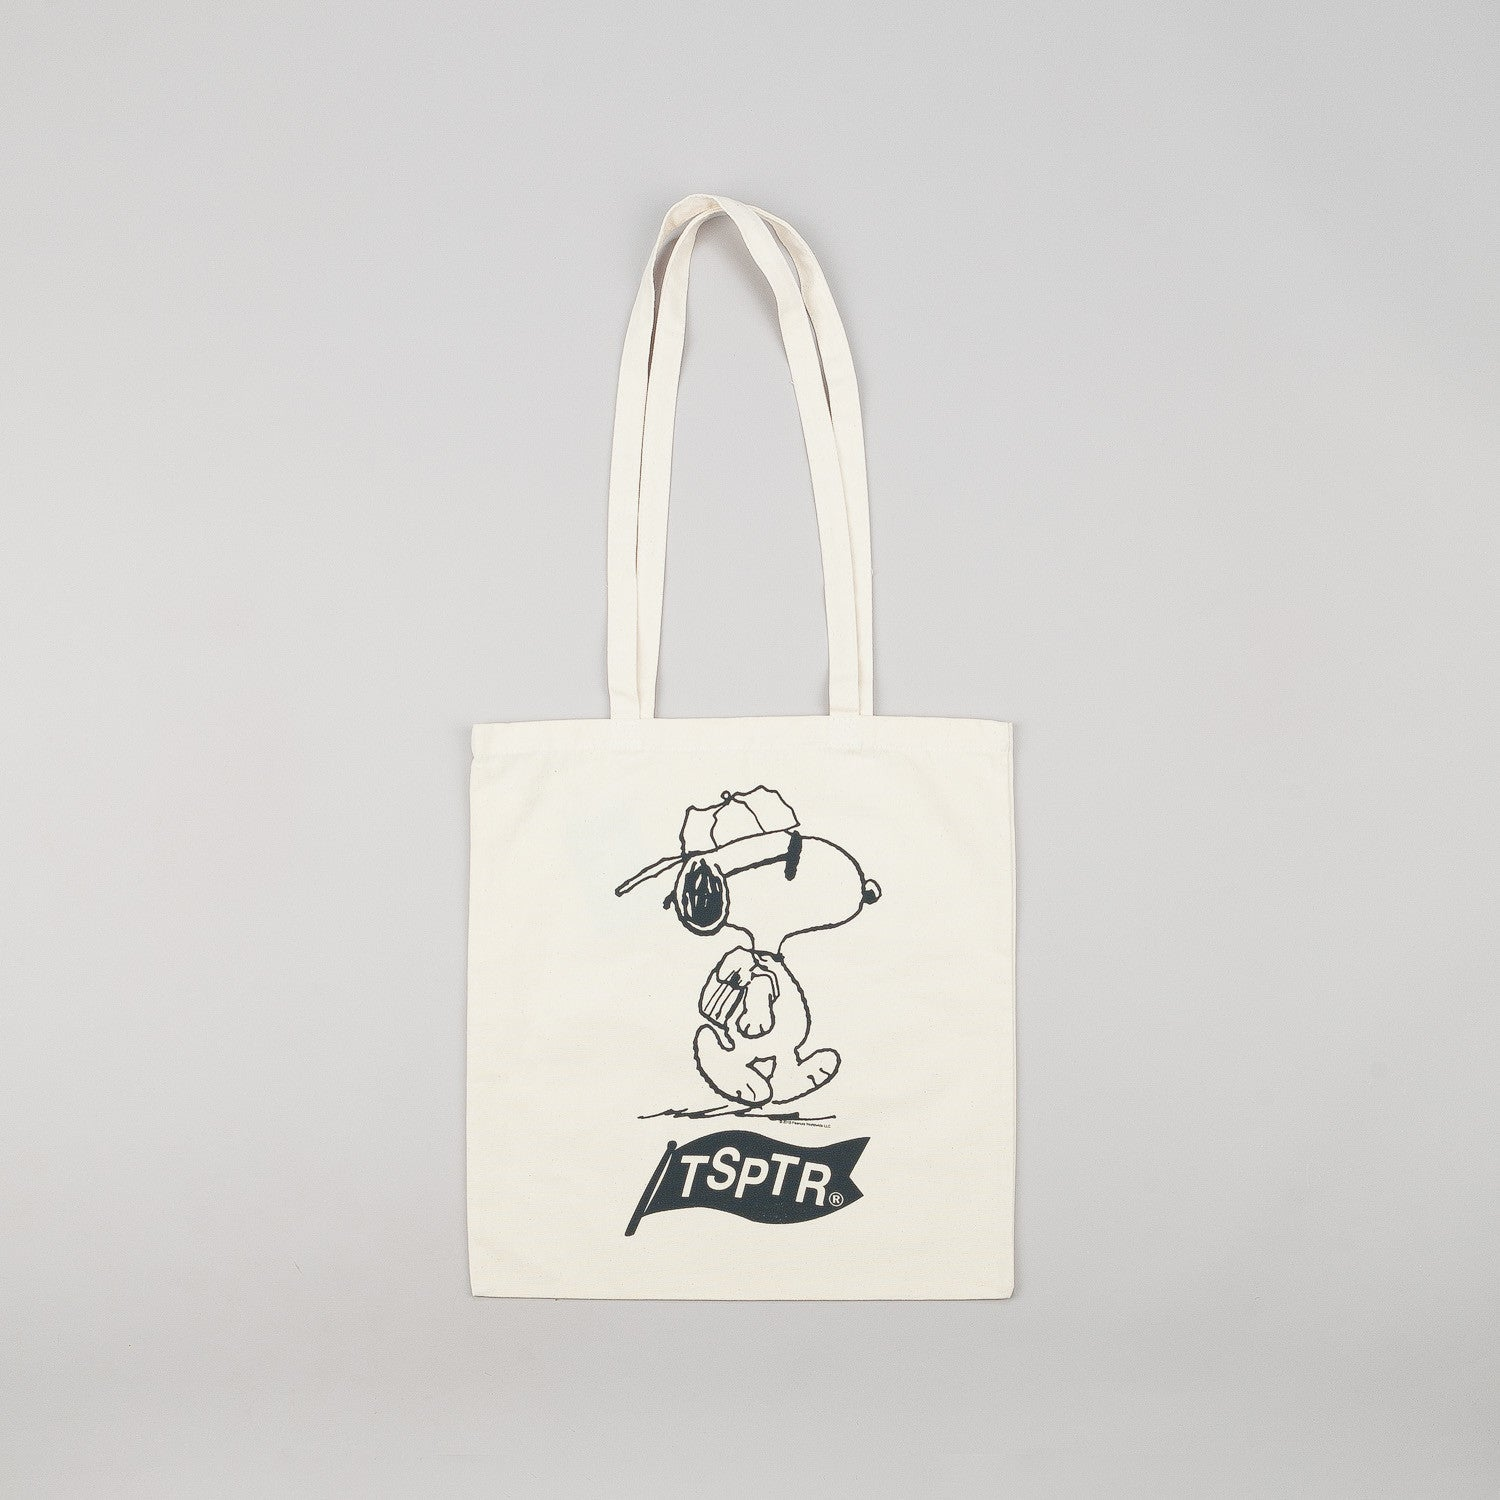 TSPTR Joe Cool Tote Bag